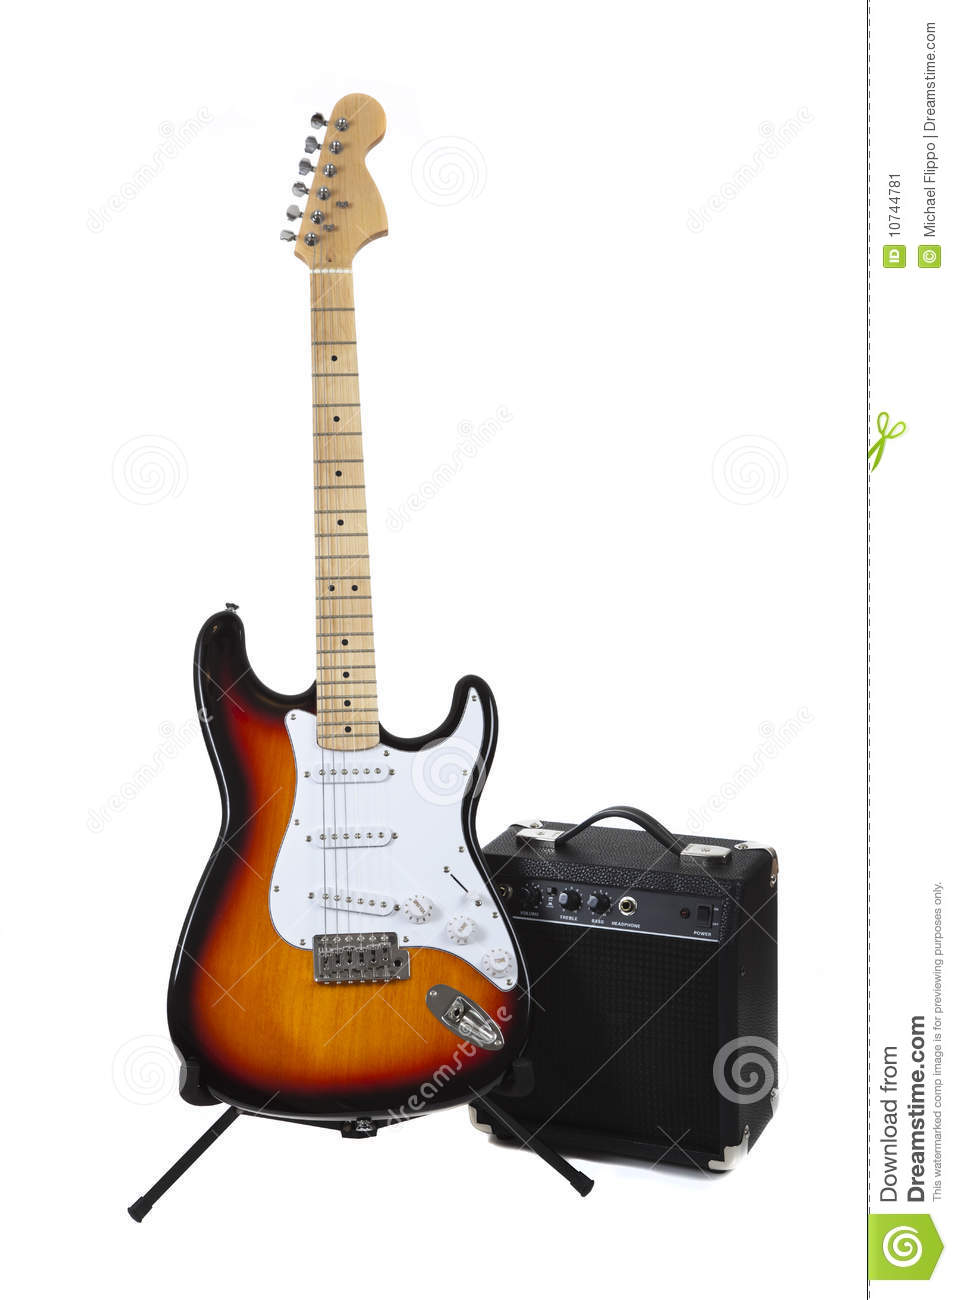 an electric guitar and amp stock image image of instrumental 10744781. Black Bedroom Furniture Sets. Home Design Ideas